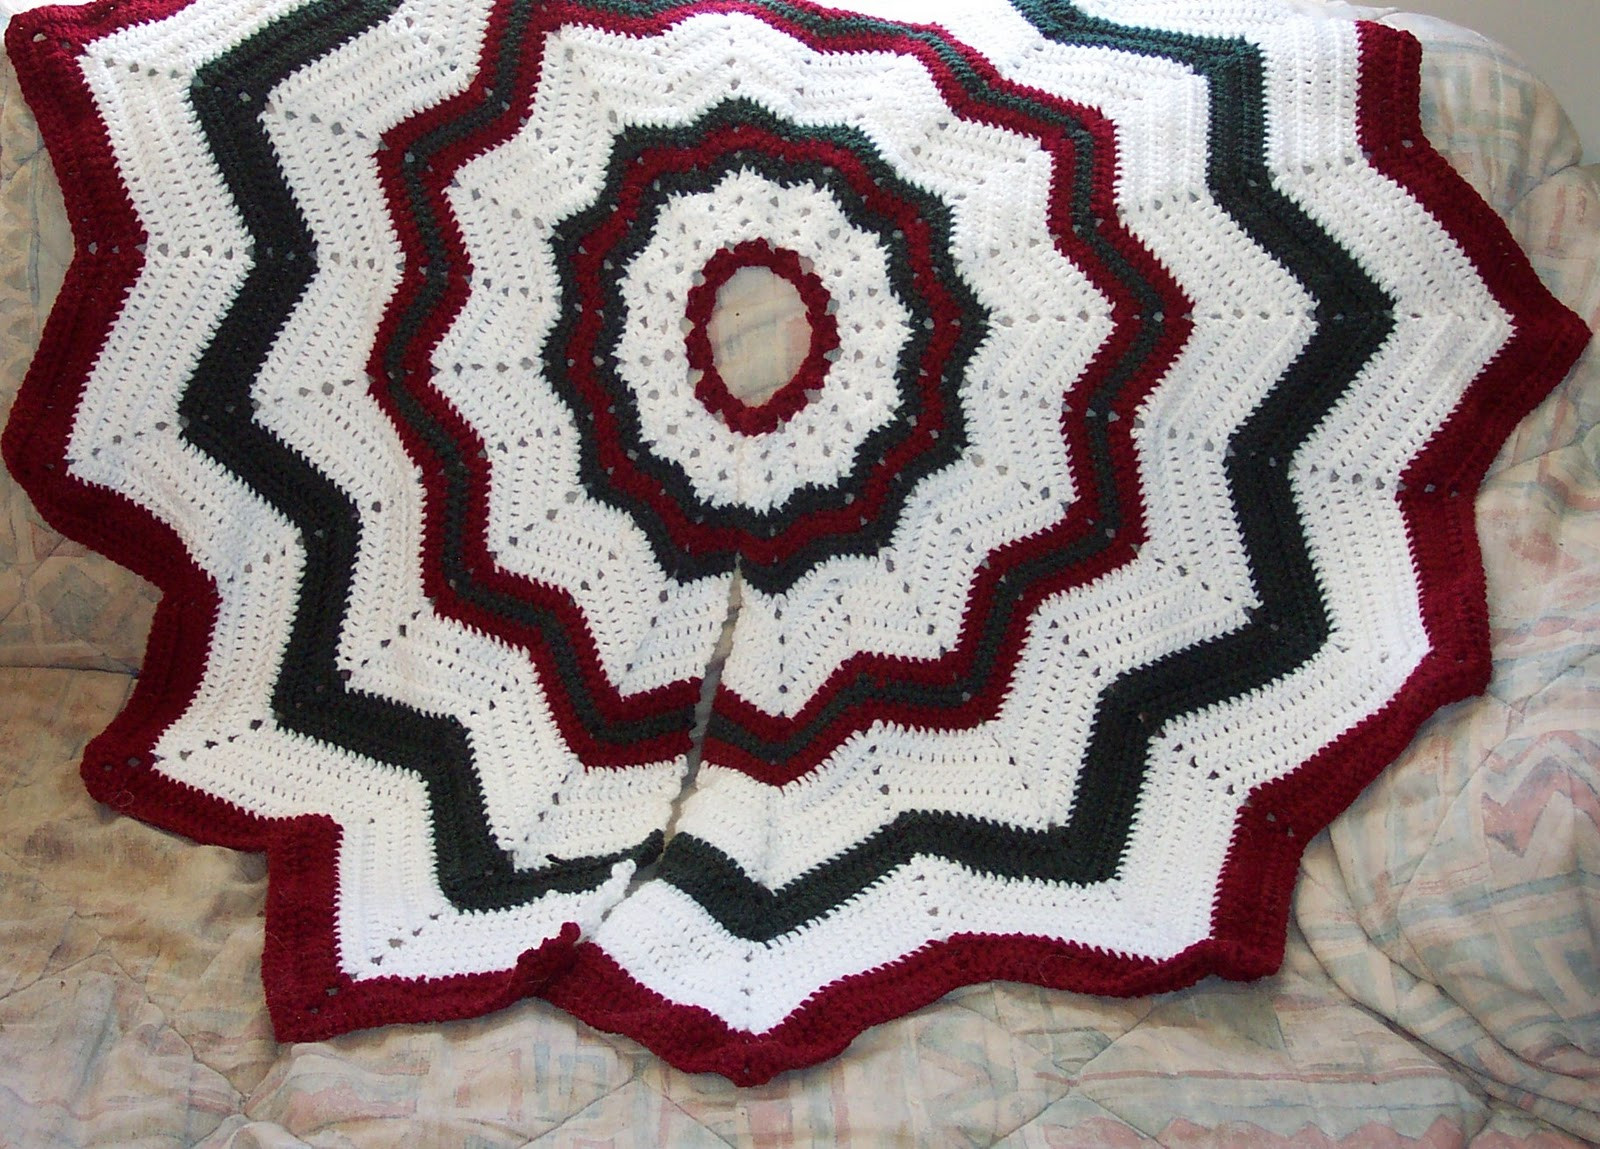 New Smoothfox Crochet and Knit Don T for the Christmas Knit Tree Skirt Pattern Of Delightful 49 Images Knit Tree Skirt Pattern